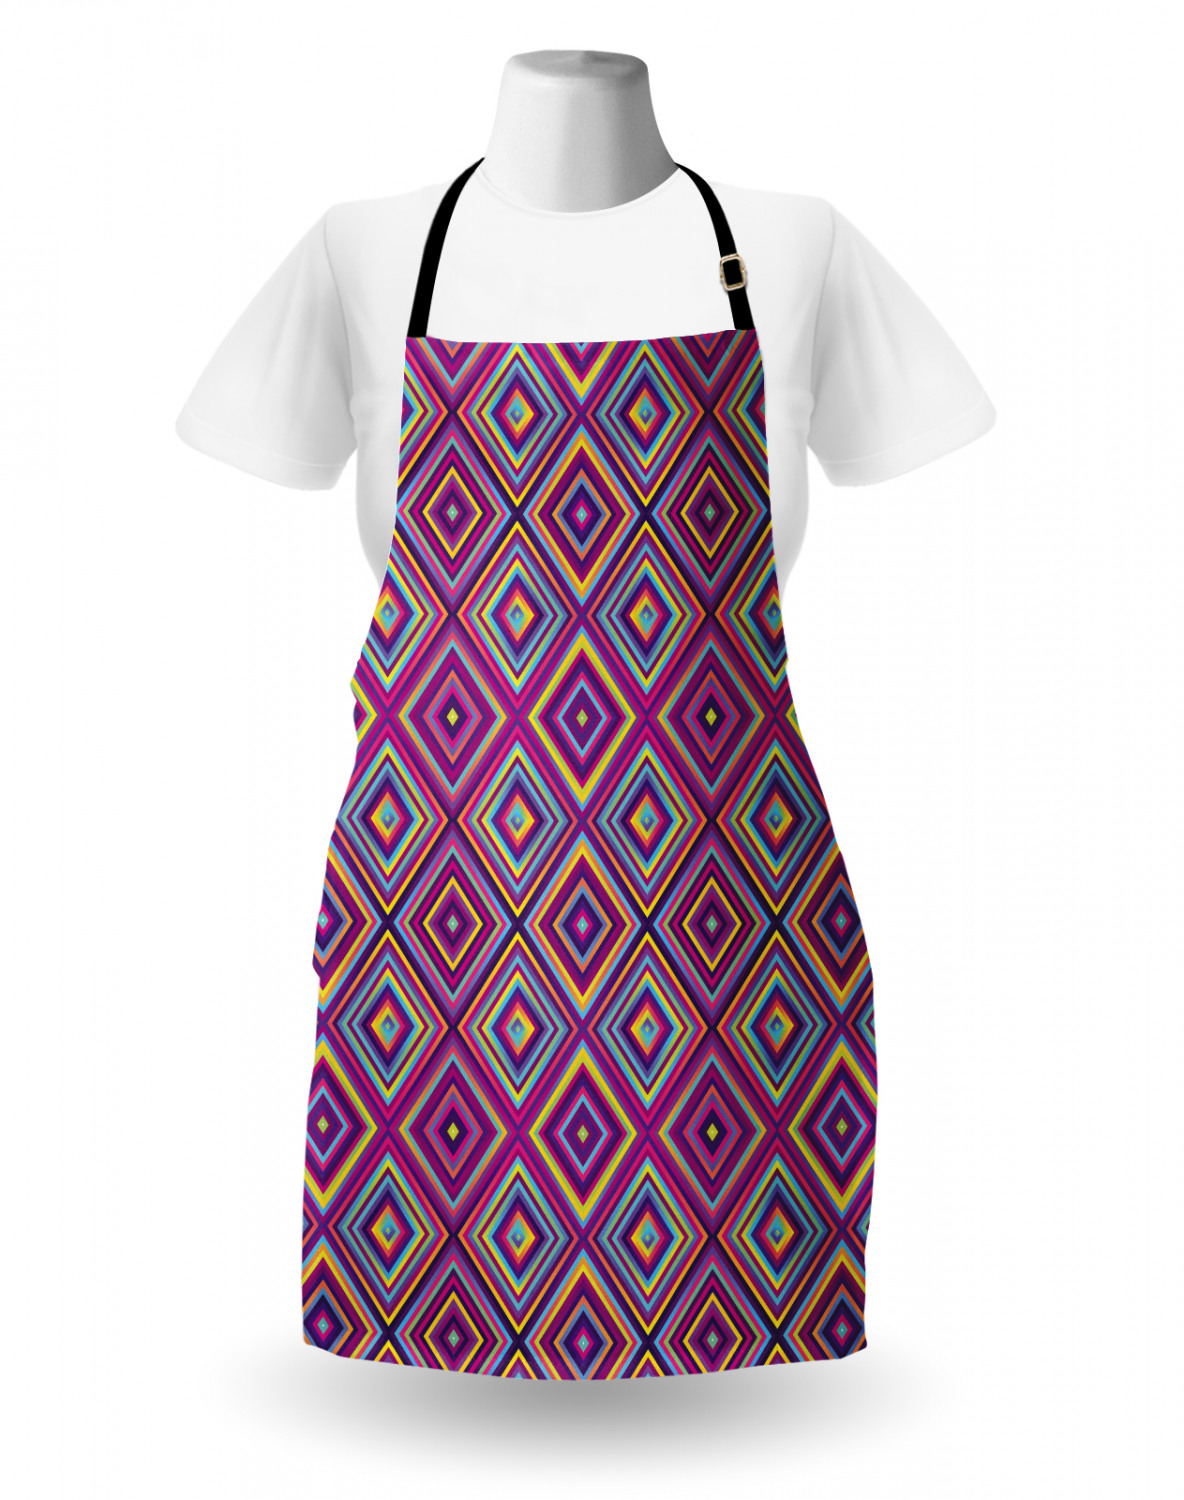 Ambesonne-Outdoor-Use-Apron-with-Adjustable-Neck-Strap-for-Gardening-and-Cooking miniatura 41